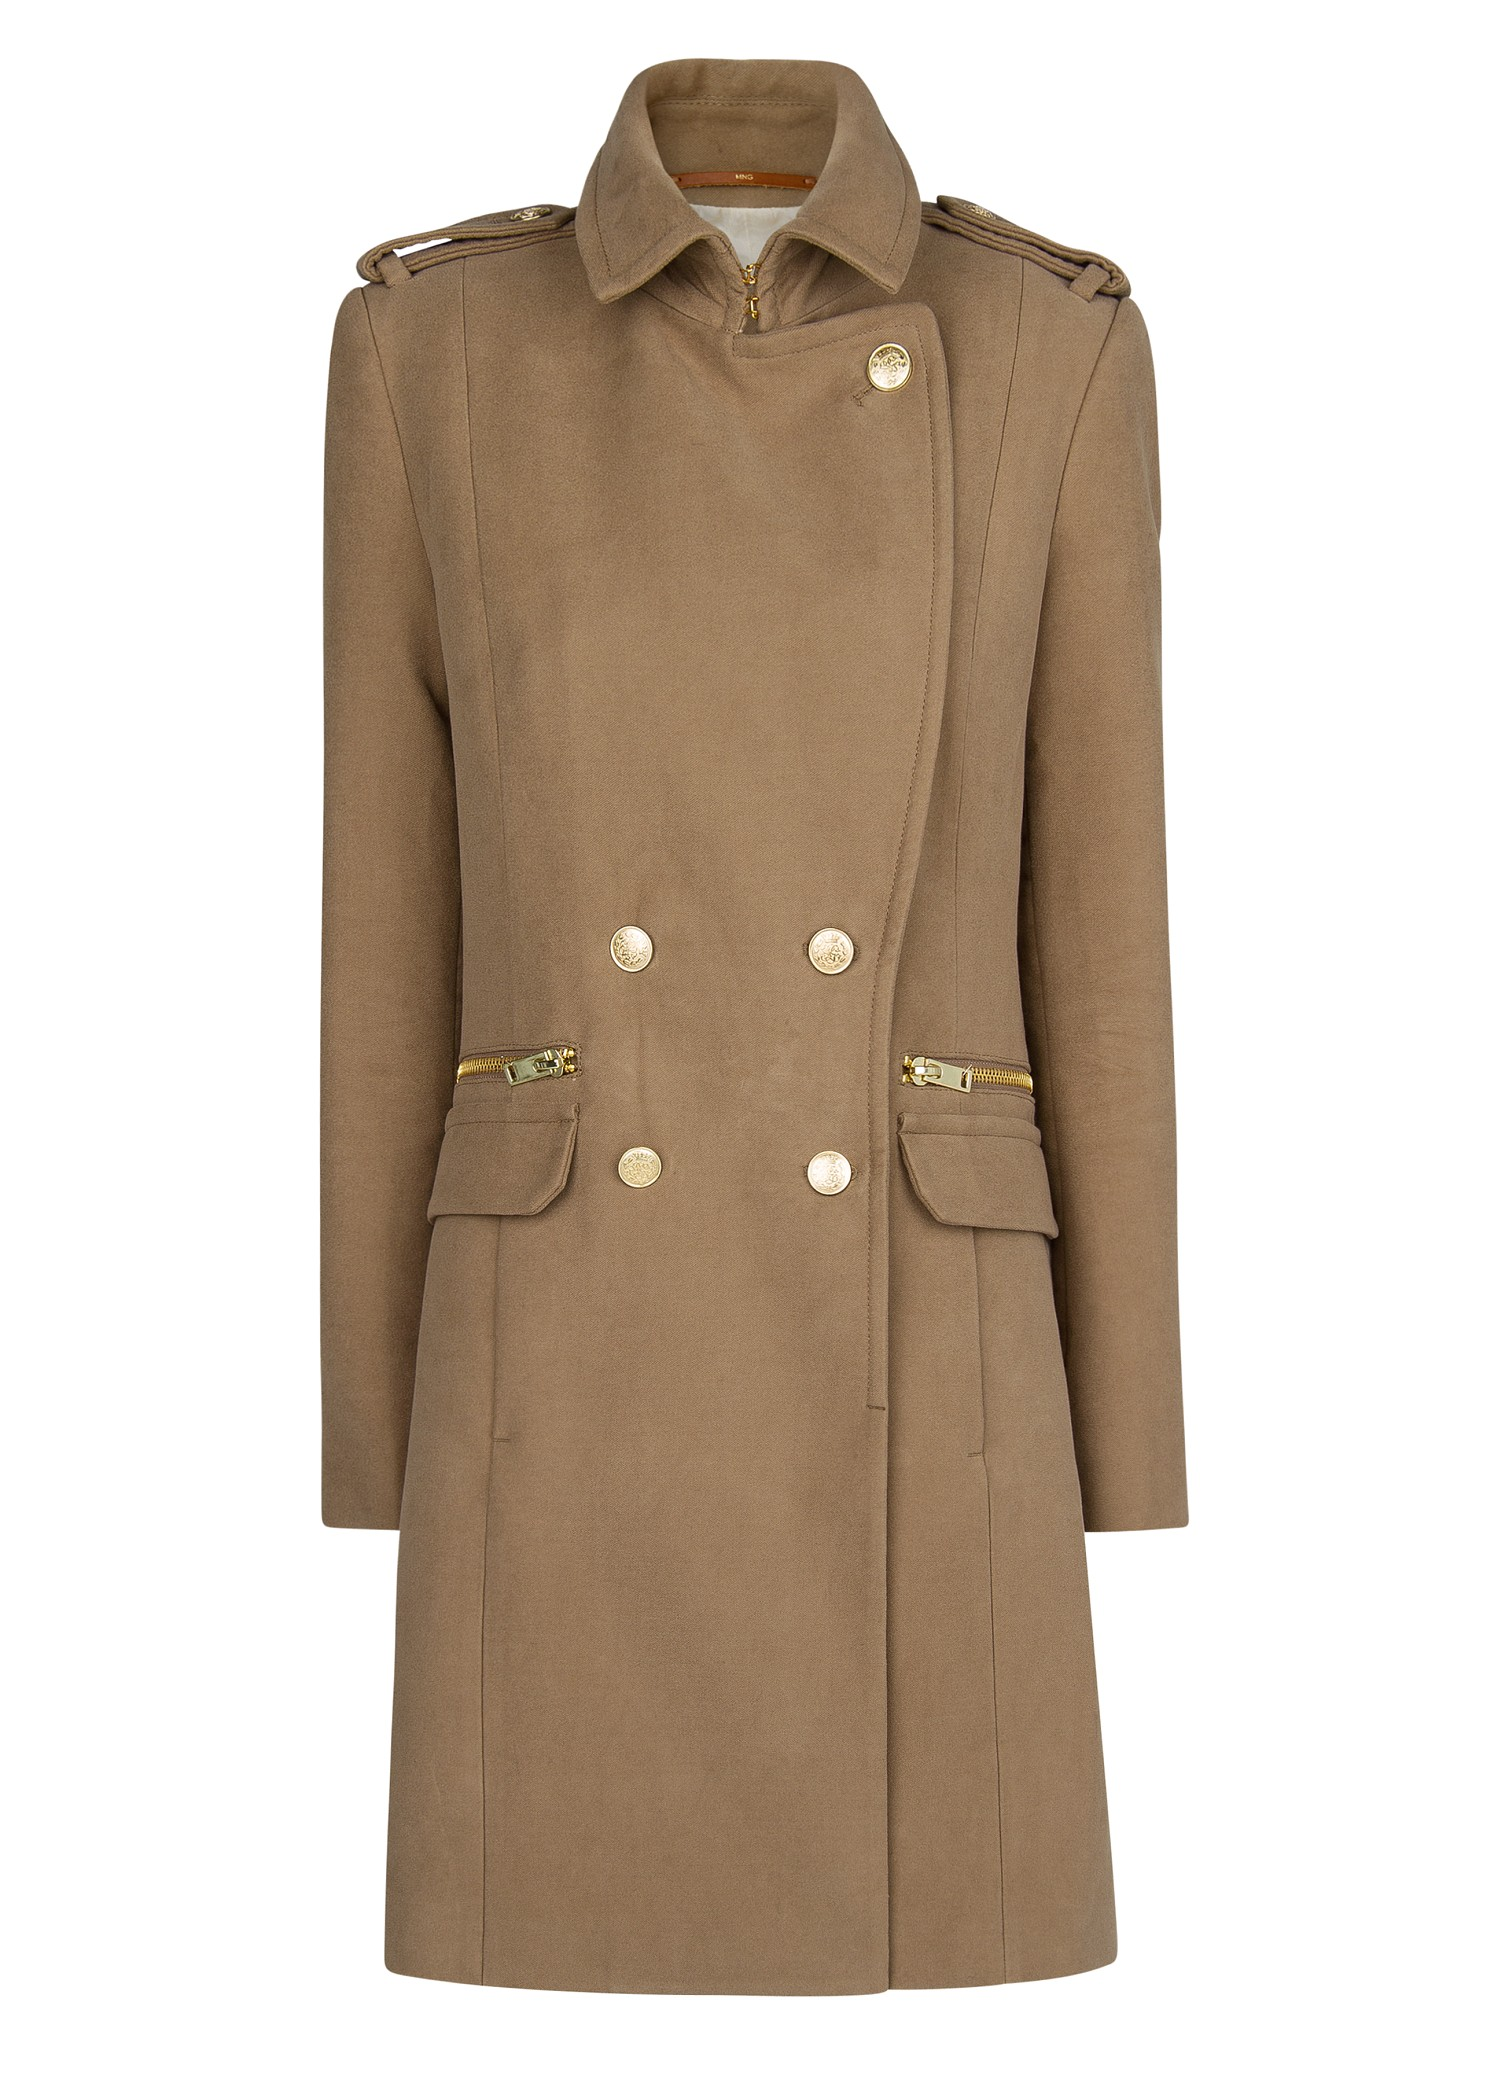 Find great deals on eBay for womens military style coats. Shop with confidence. Skip to main content. eBay: Sutton Studio Womens Military Style Crepe Long Jacket Coat See more like this. Arizona Jeans Co Women's L Military Style Coat Army Green Fleece Lined Zip& Snap. Pre-Owned. $